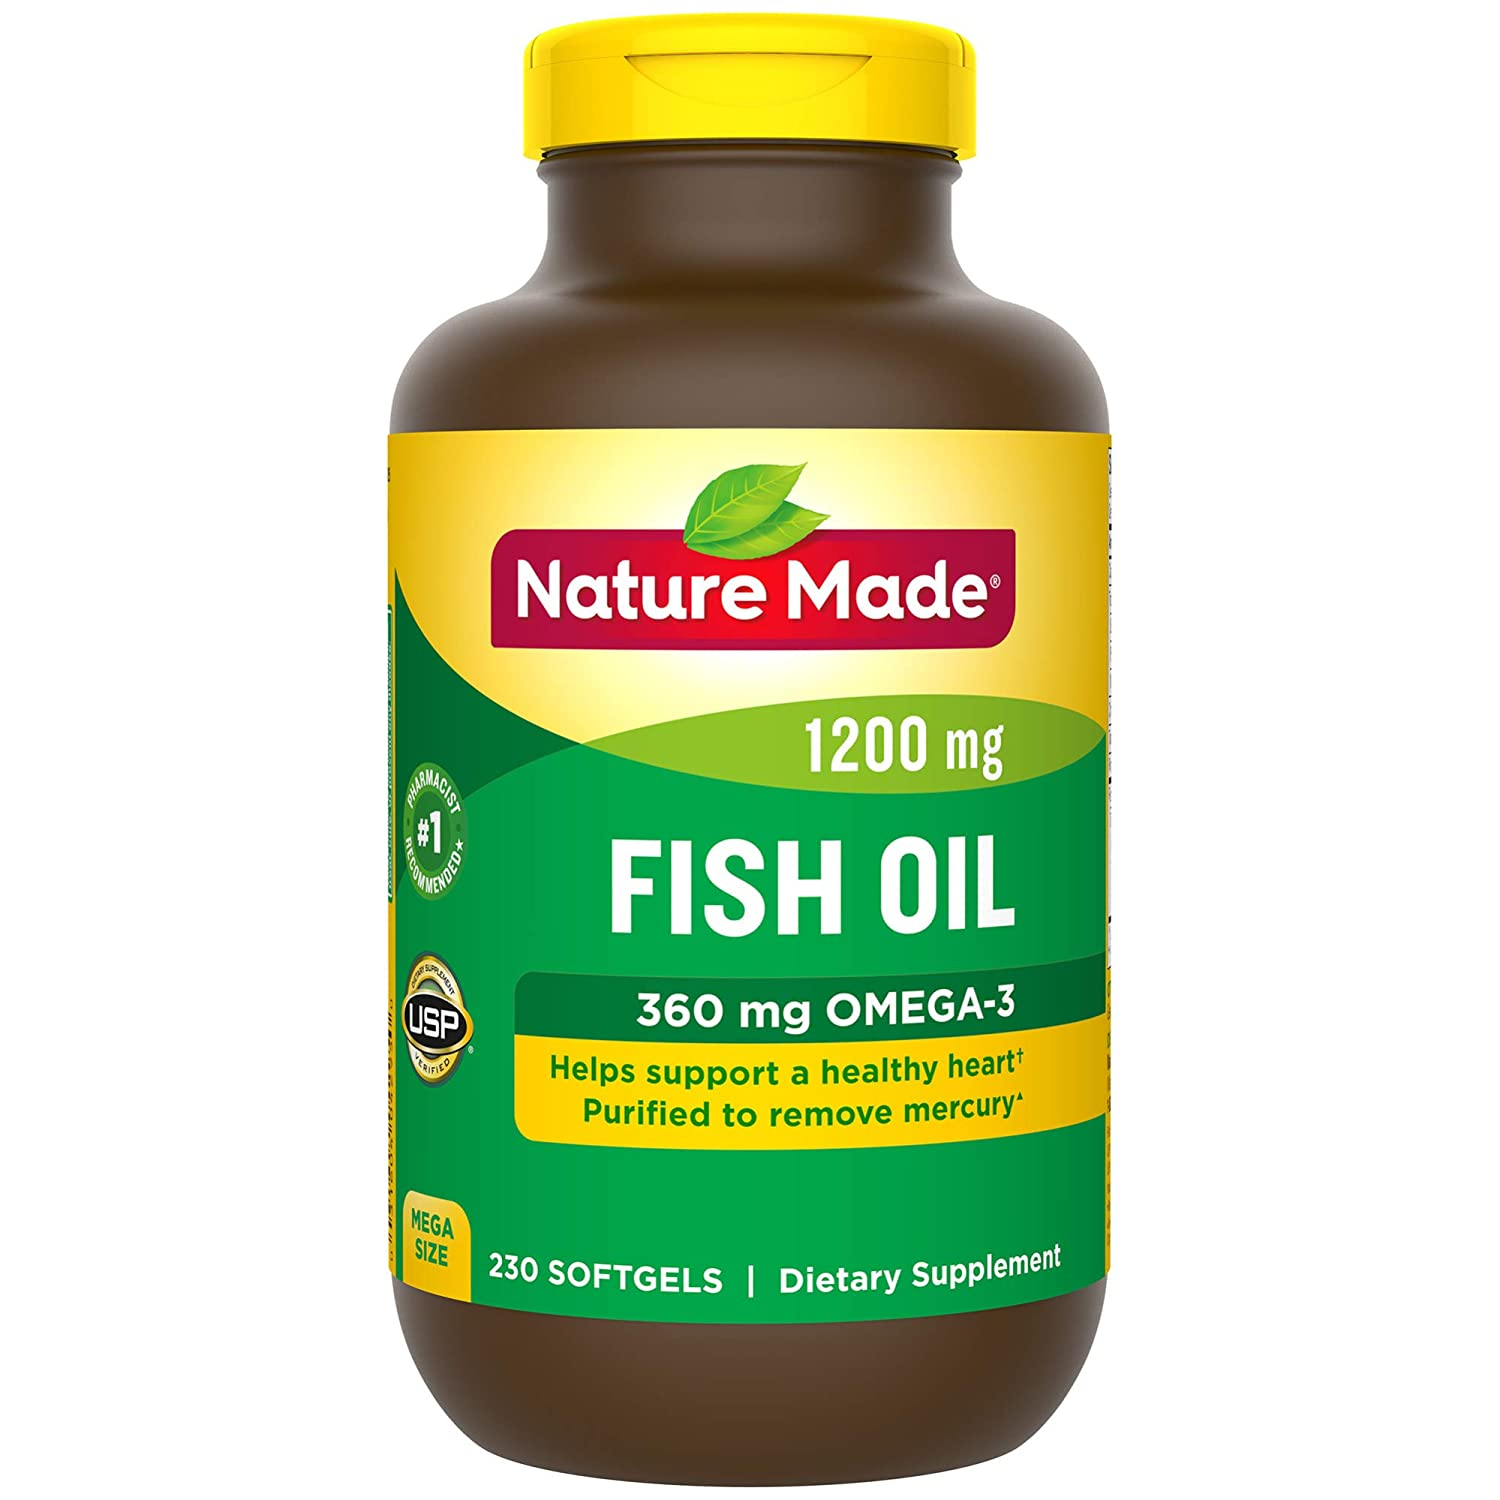 Nature Made Fish Oil 1200 mg Softgels, 230 Count Mega Size for Heart Health† (Packaging May Vary)